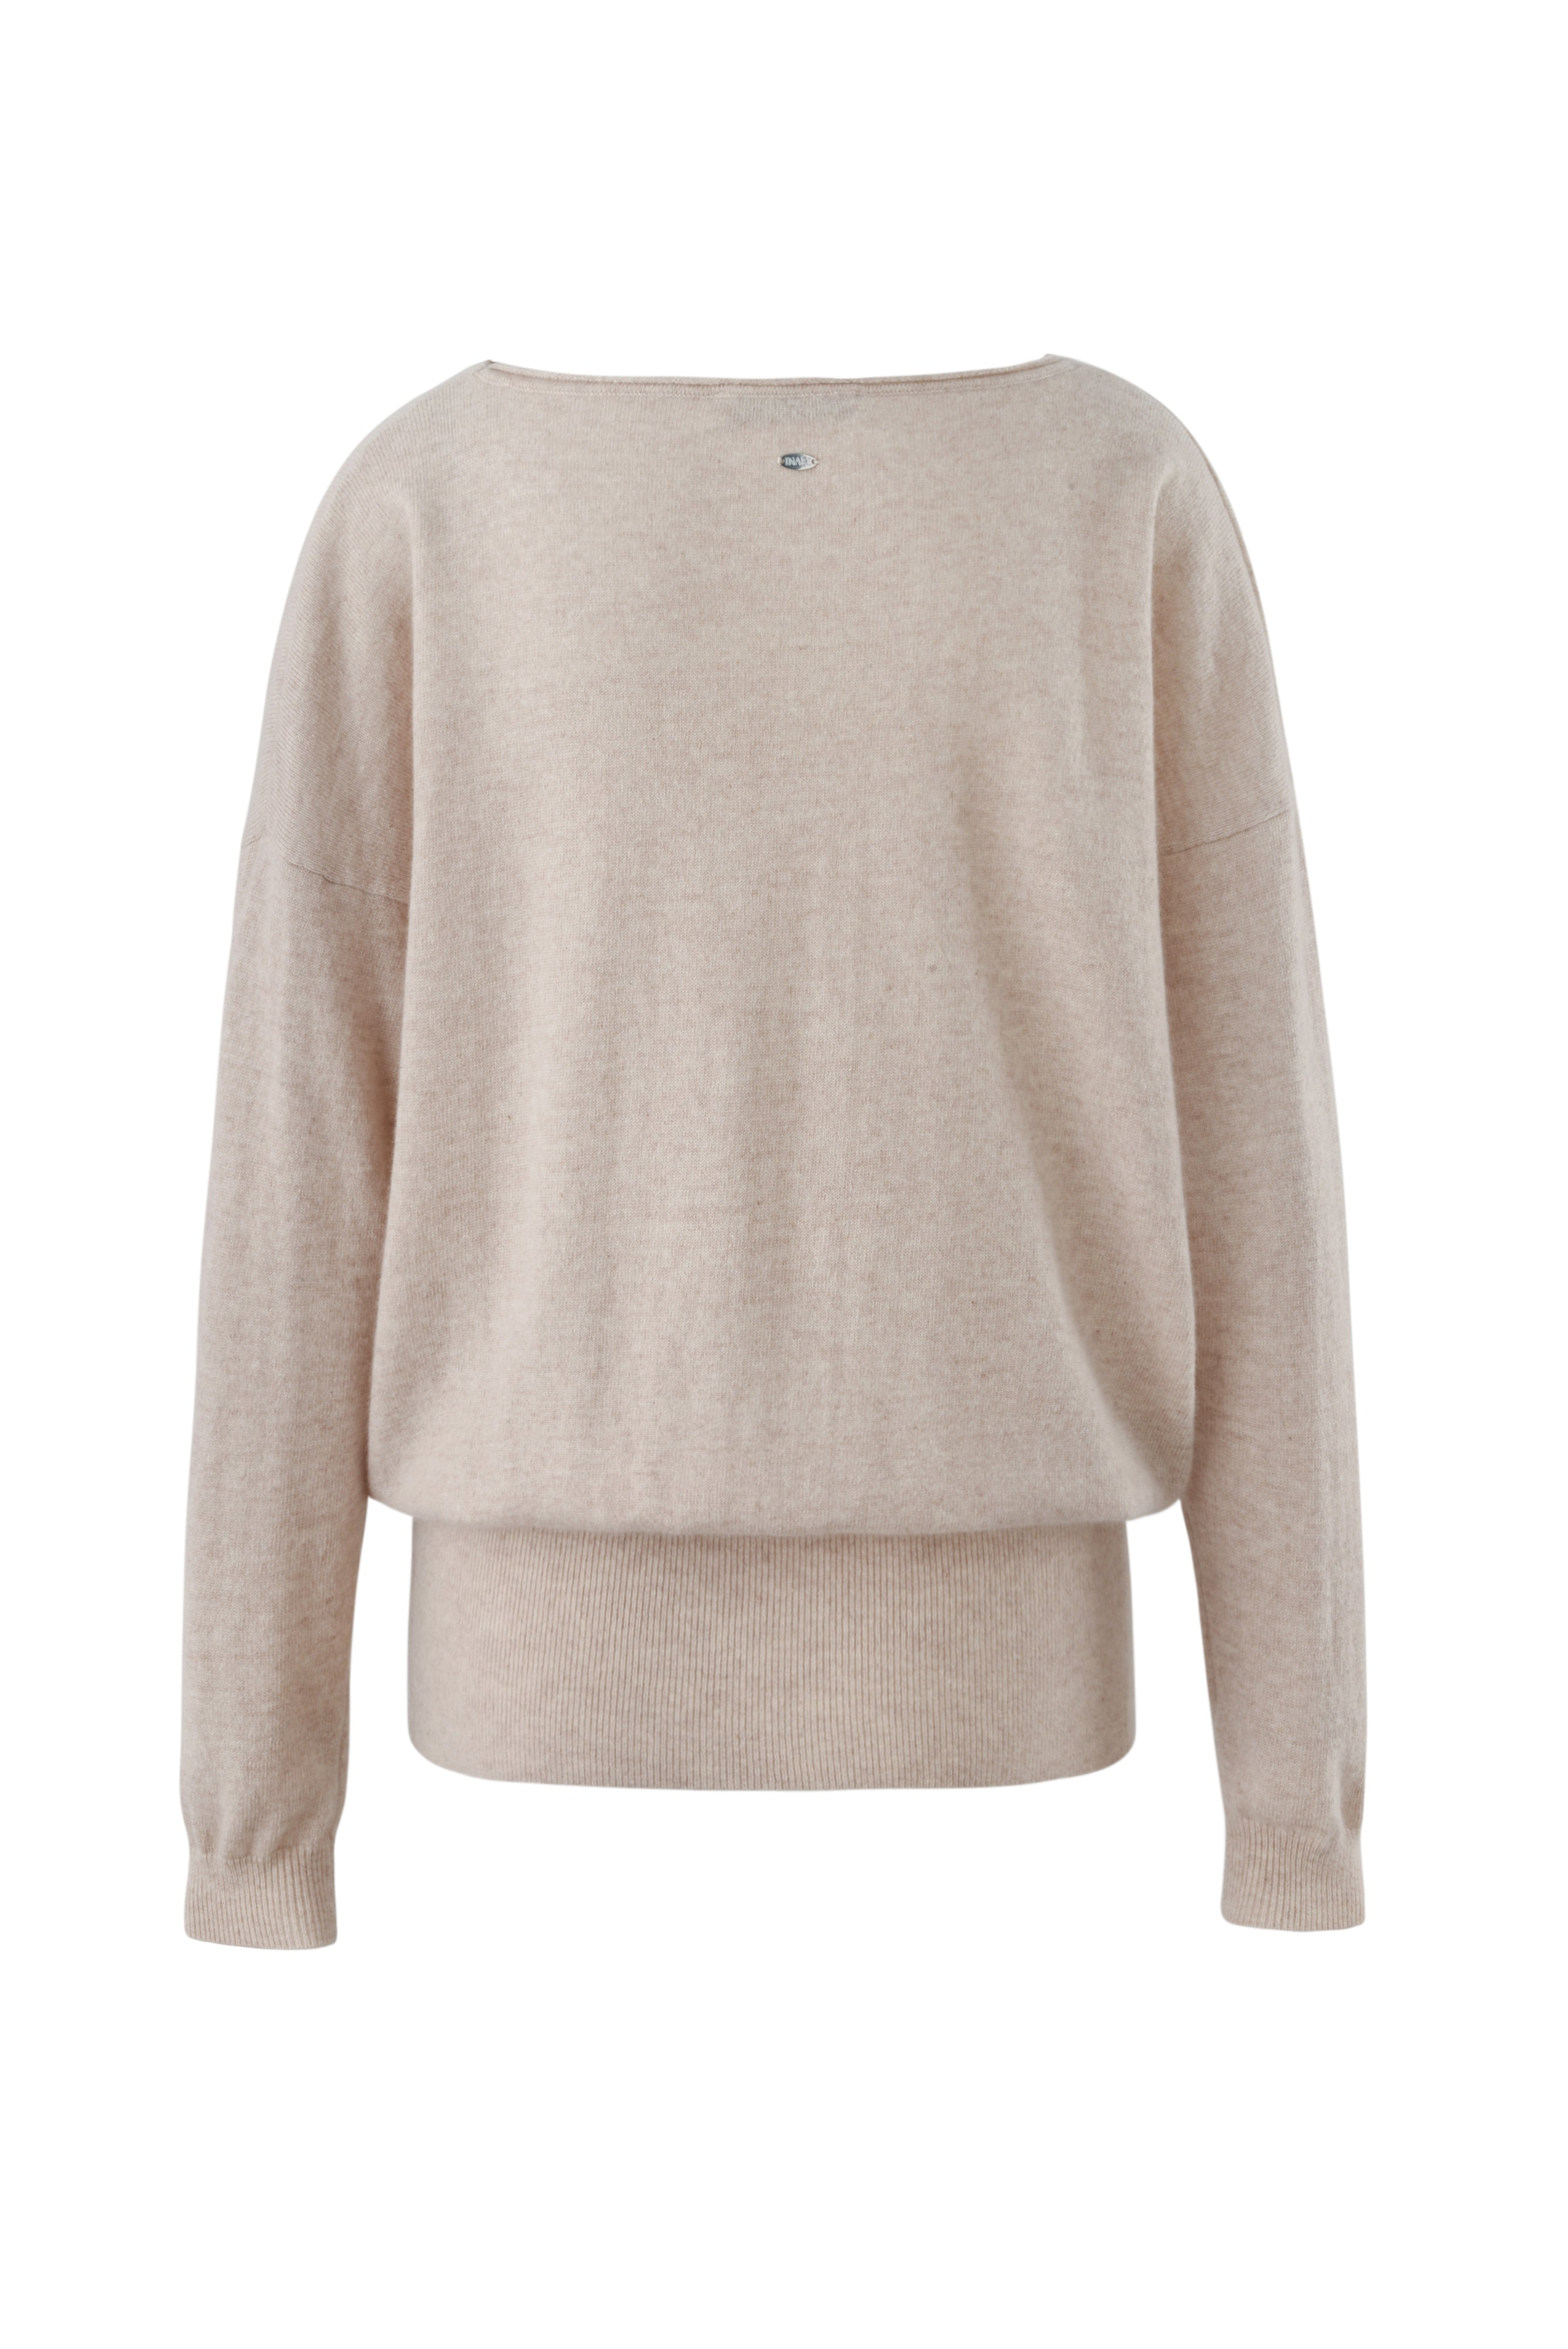 Inari Women's beige cashmere O-neck sweater - back side - 100% high-quality cashmere